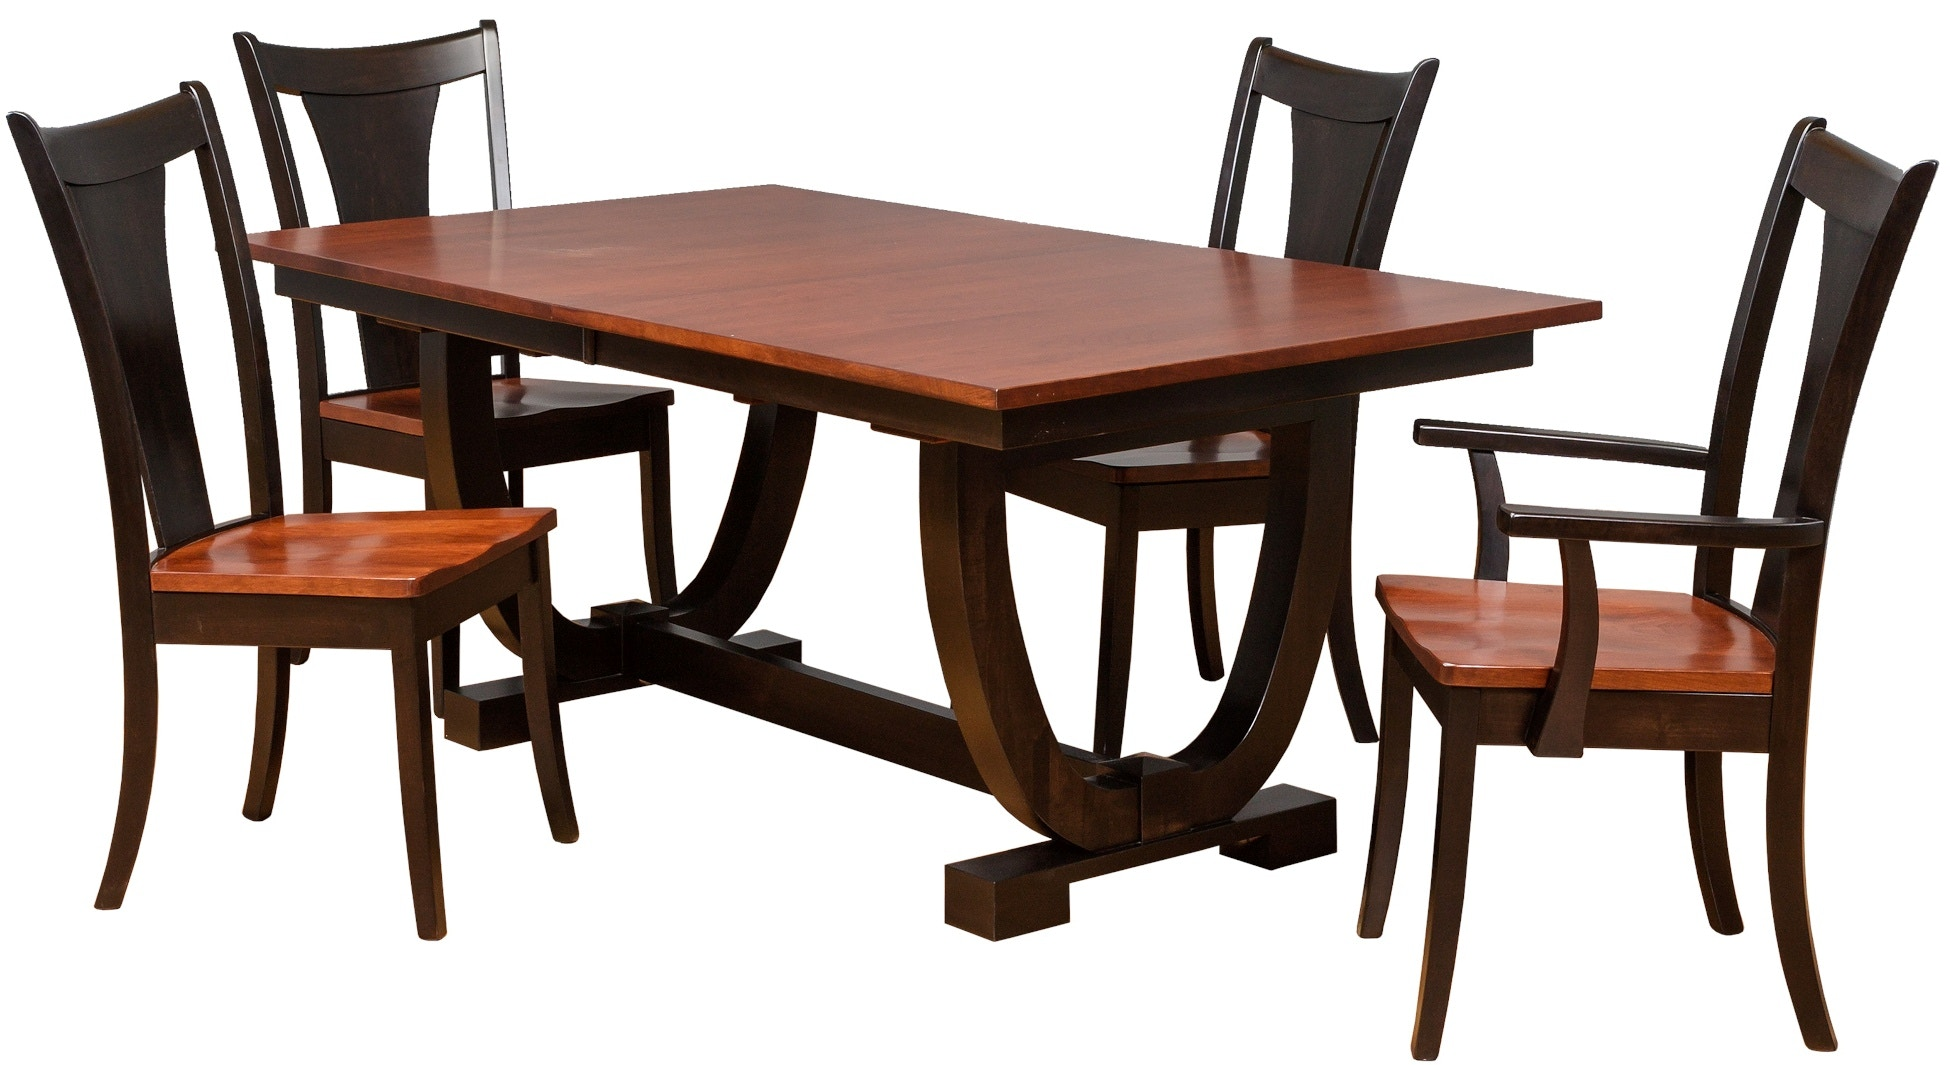 Danielu0027s Amish Table And 8 Chairs 42722 FAL9PC